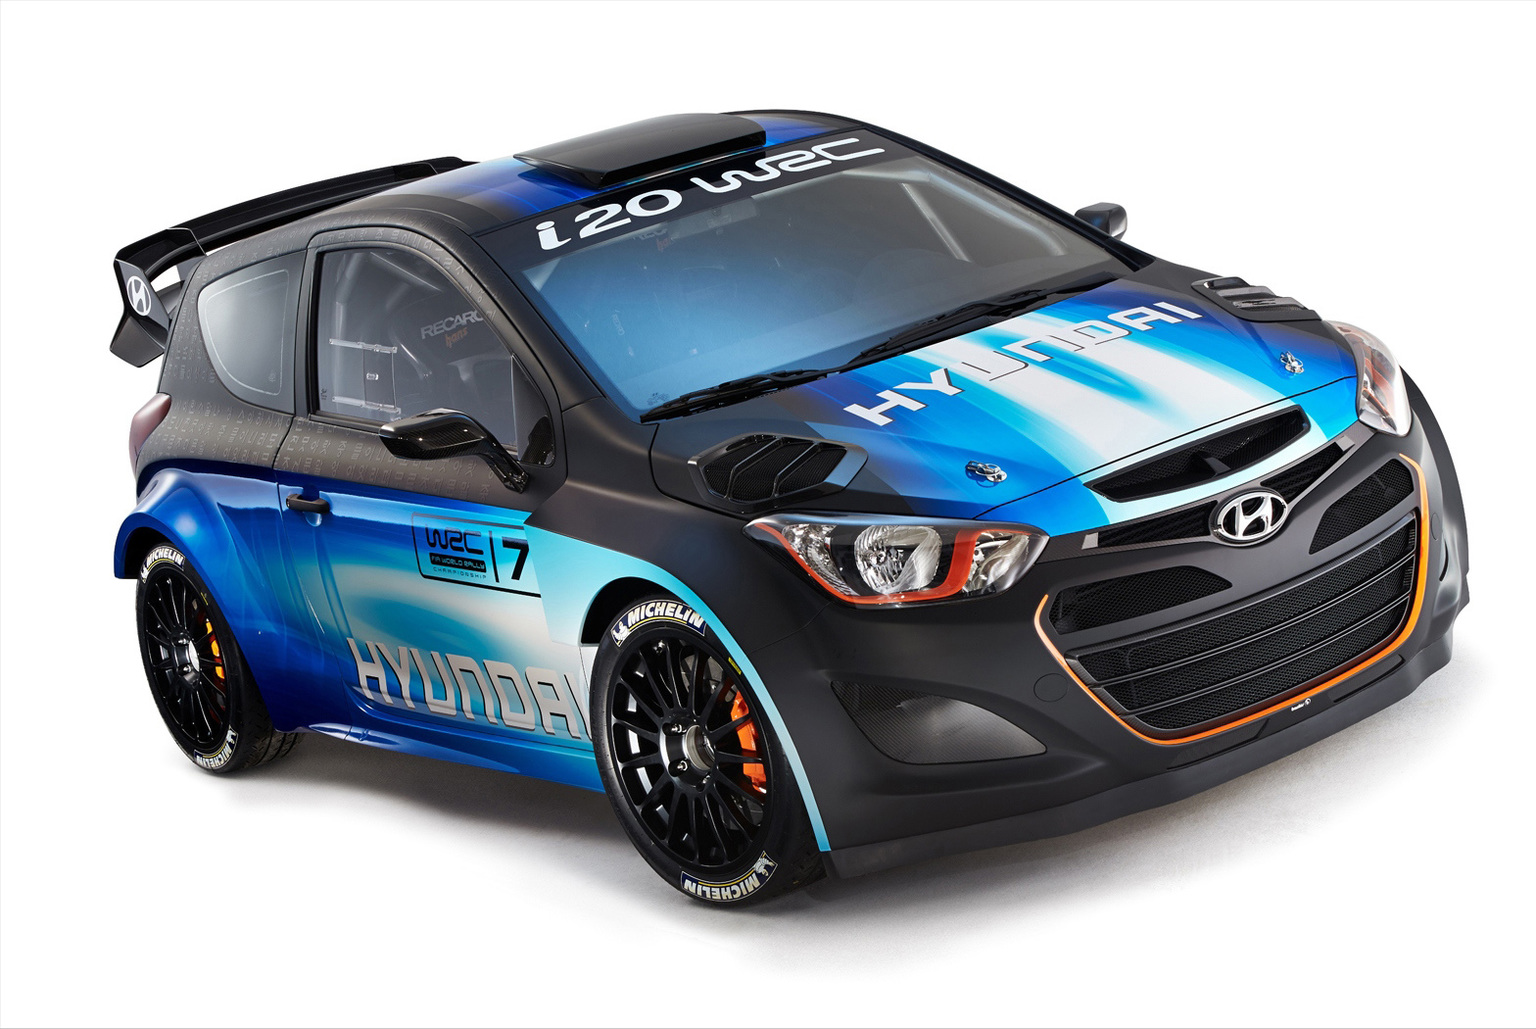 2013 hyundai i20 wrc showcar review. Black Bedroom Furniture Sets. Home Design Ideas